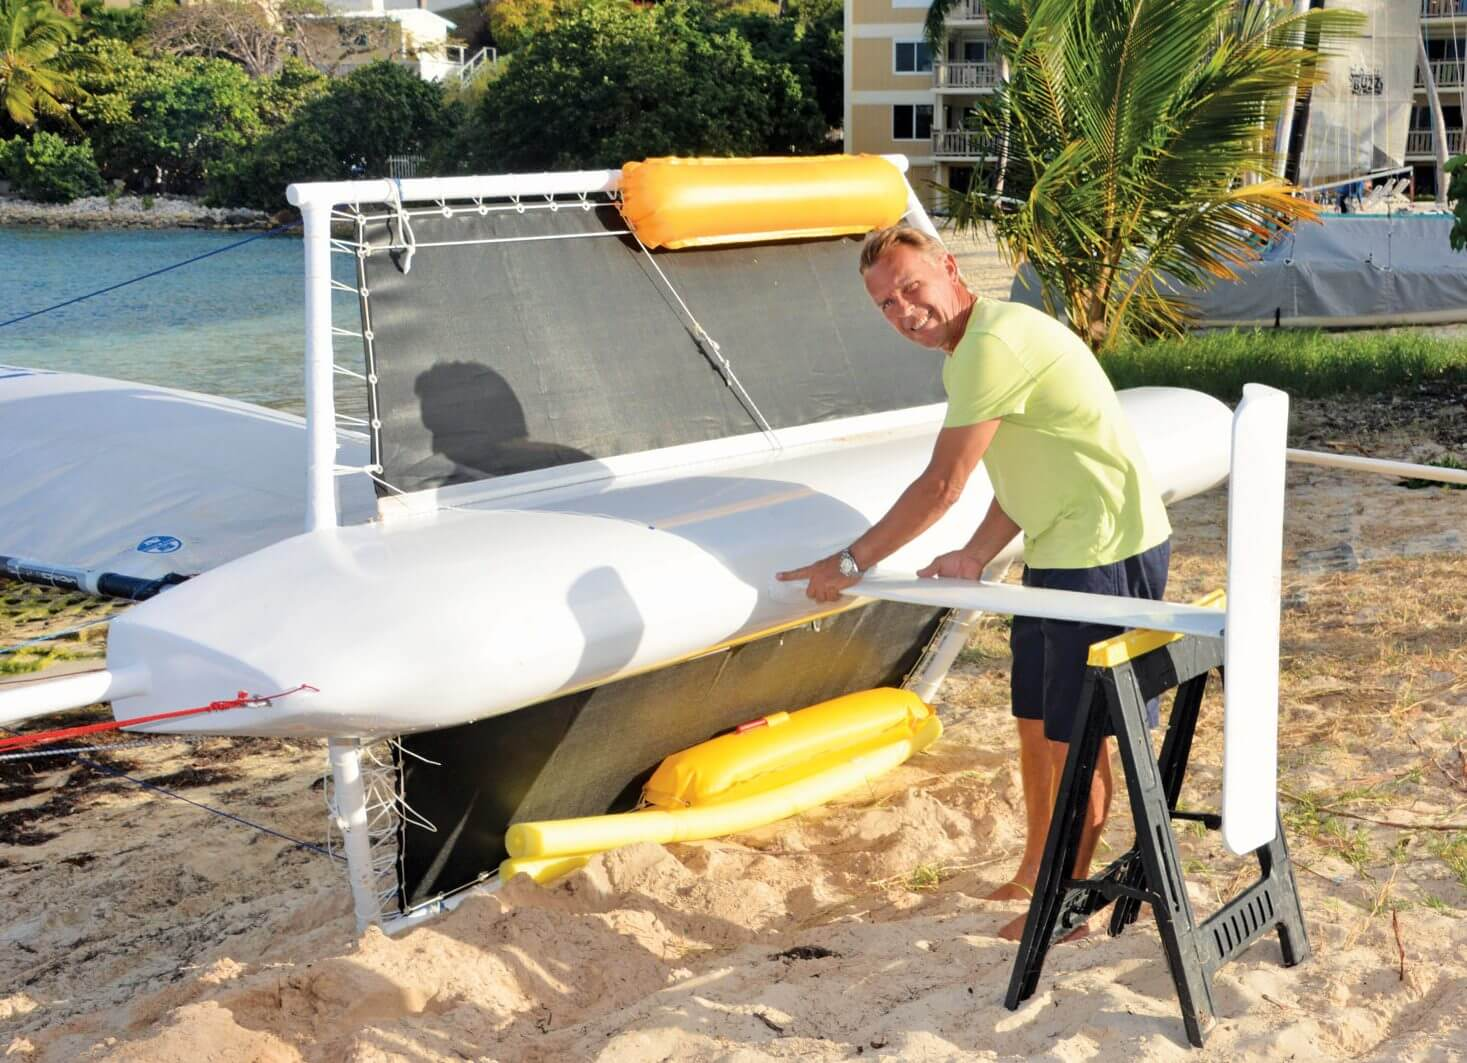 Tom Kozyn adds the finishing touches to the monohull hydrofoiler